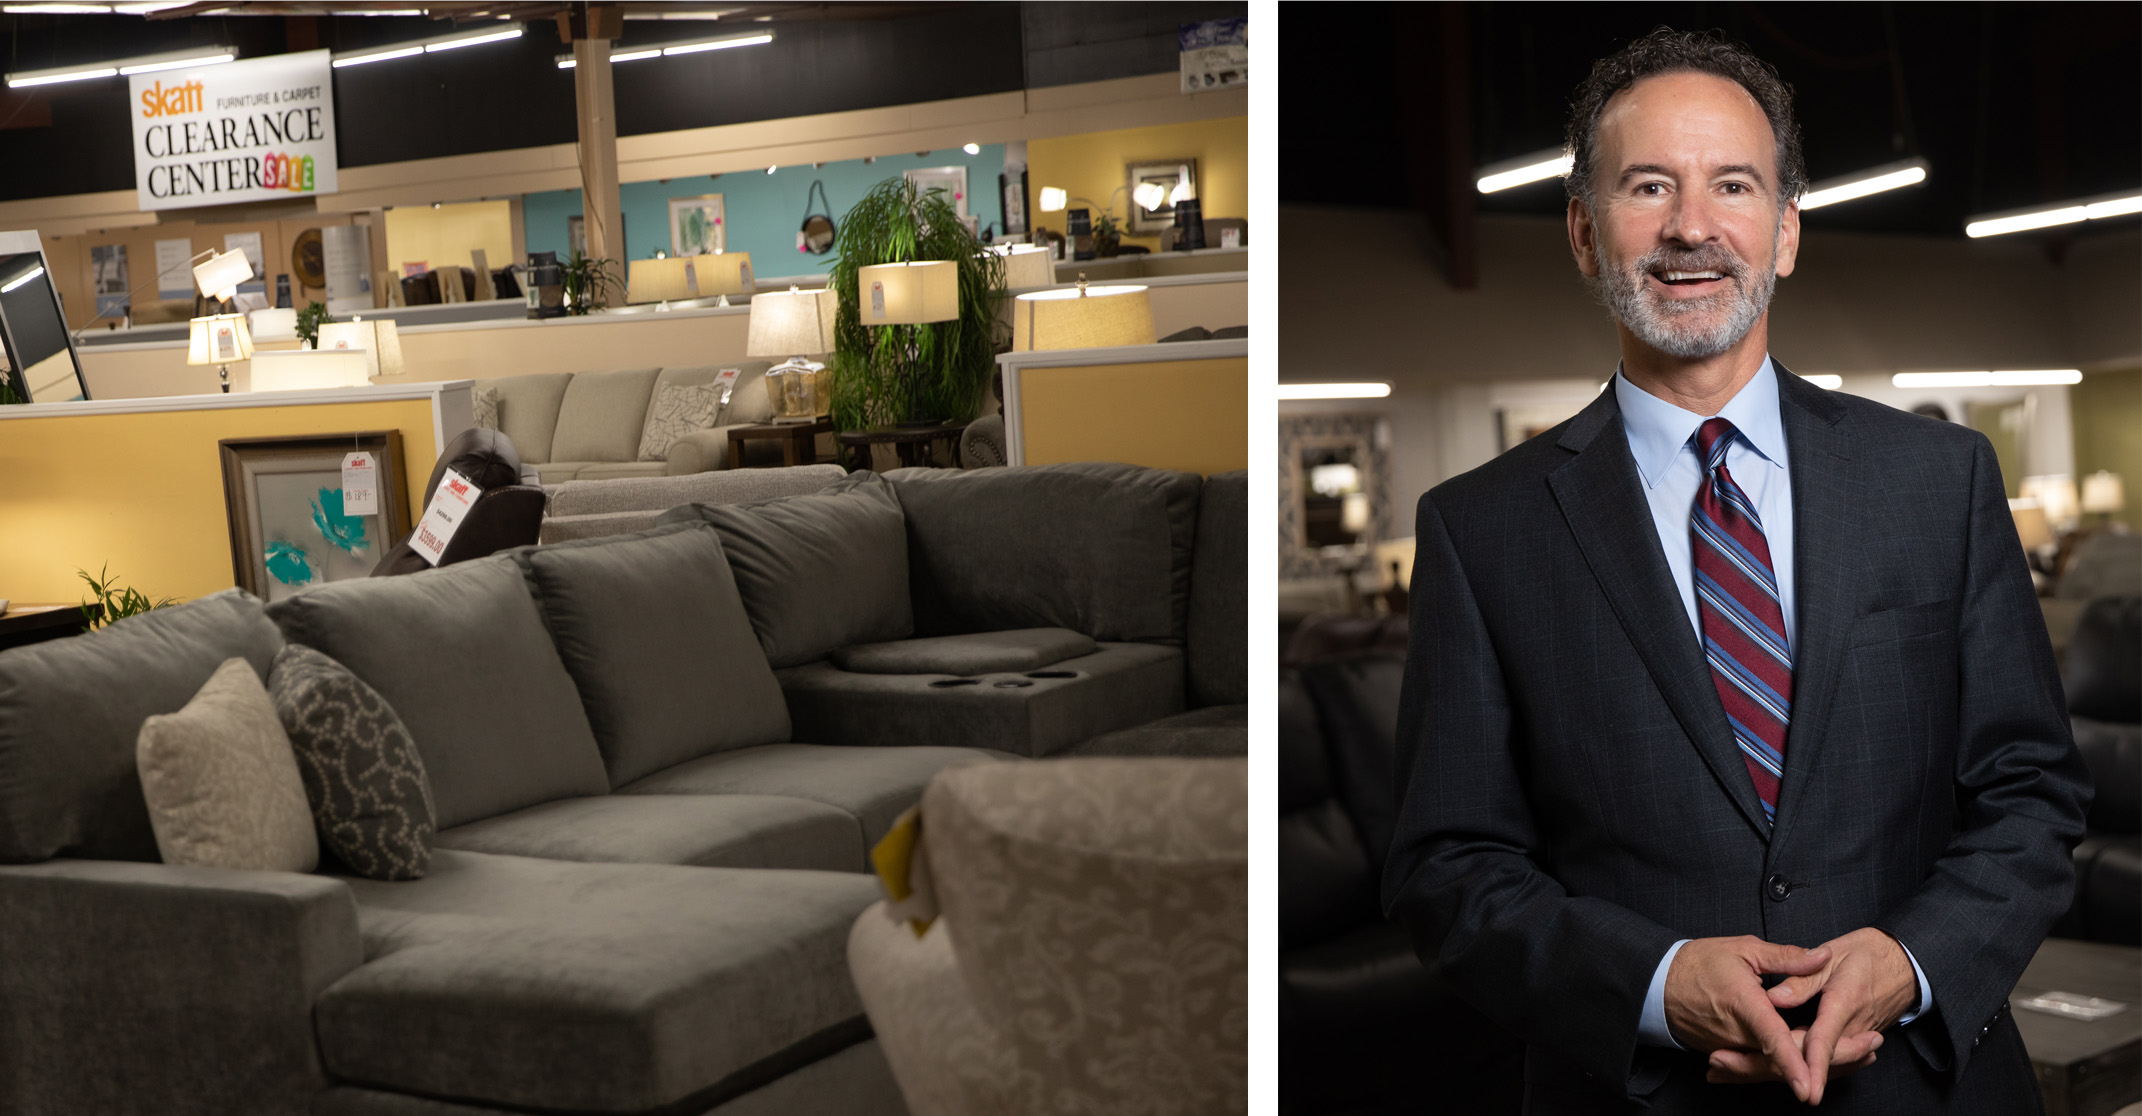 Mike Skaff, co-owner of Skaff Furniture Carpet One in Flint, MI